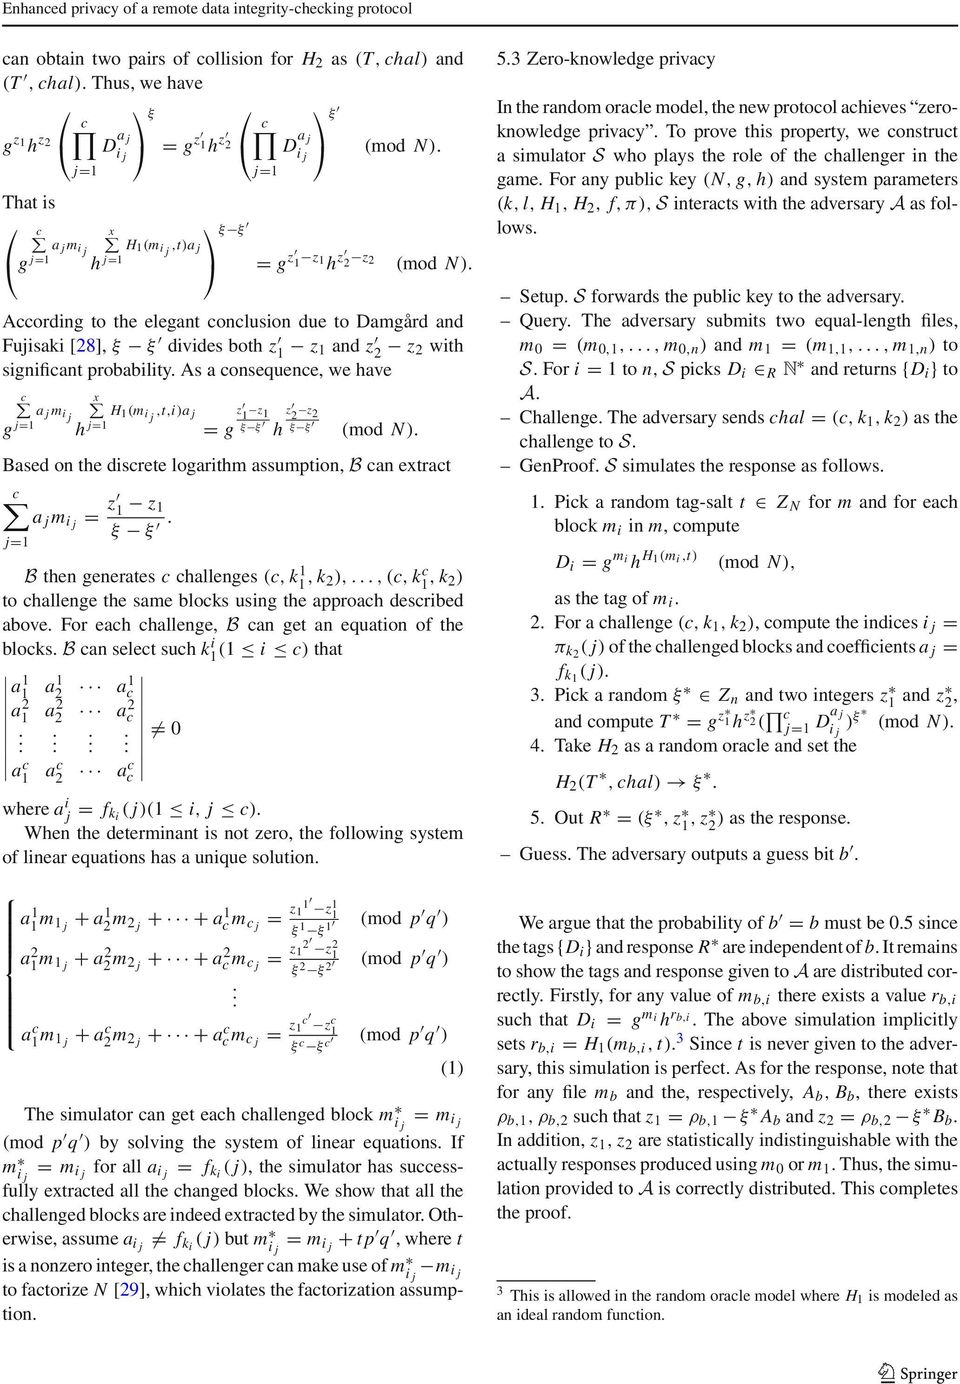 According to the elegant conclusion due to Damgård and Fujisaki [28], ξ ξ divides both z 1 z 1 and z 2 z 2 with significant probability.